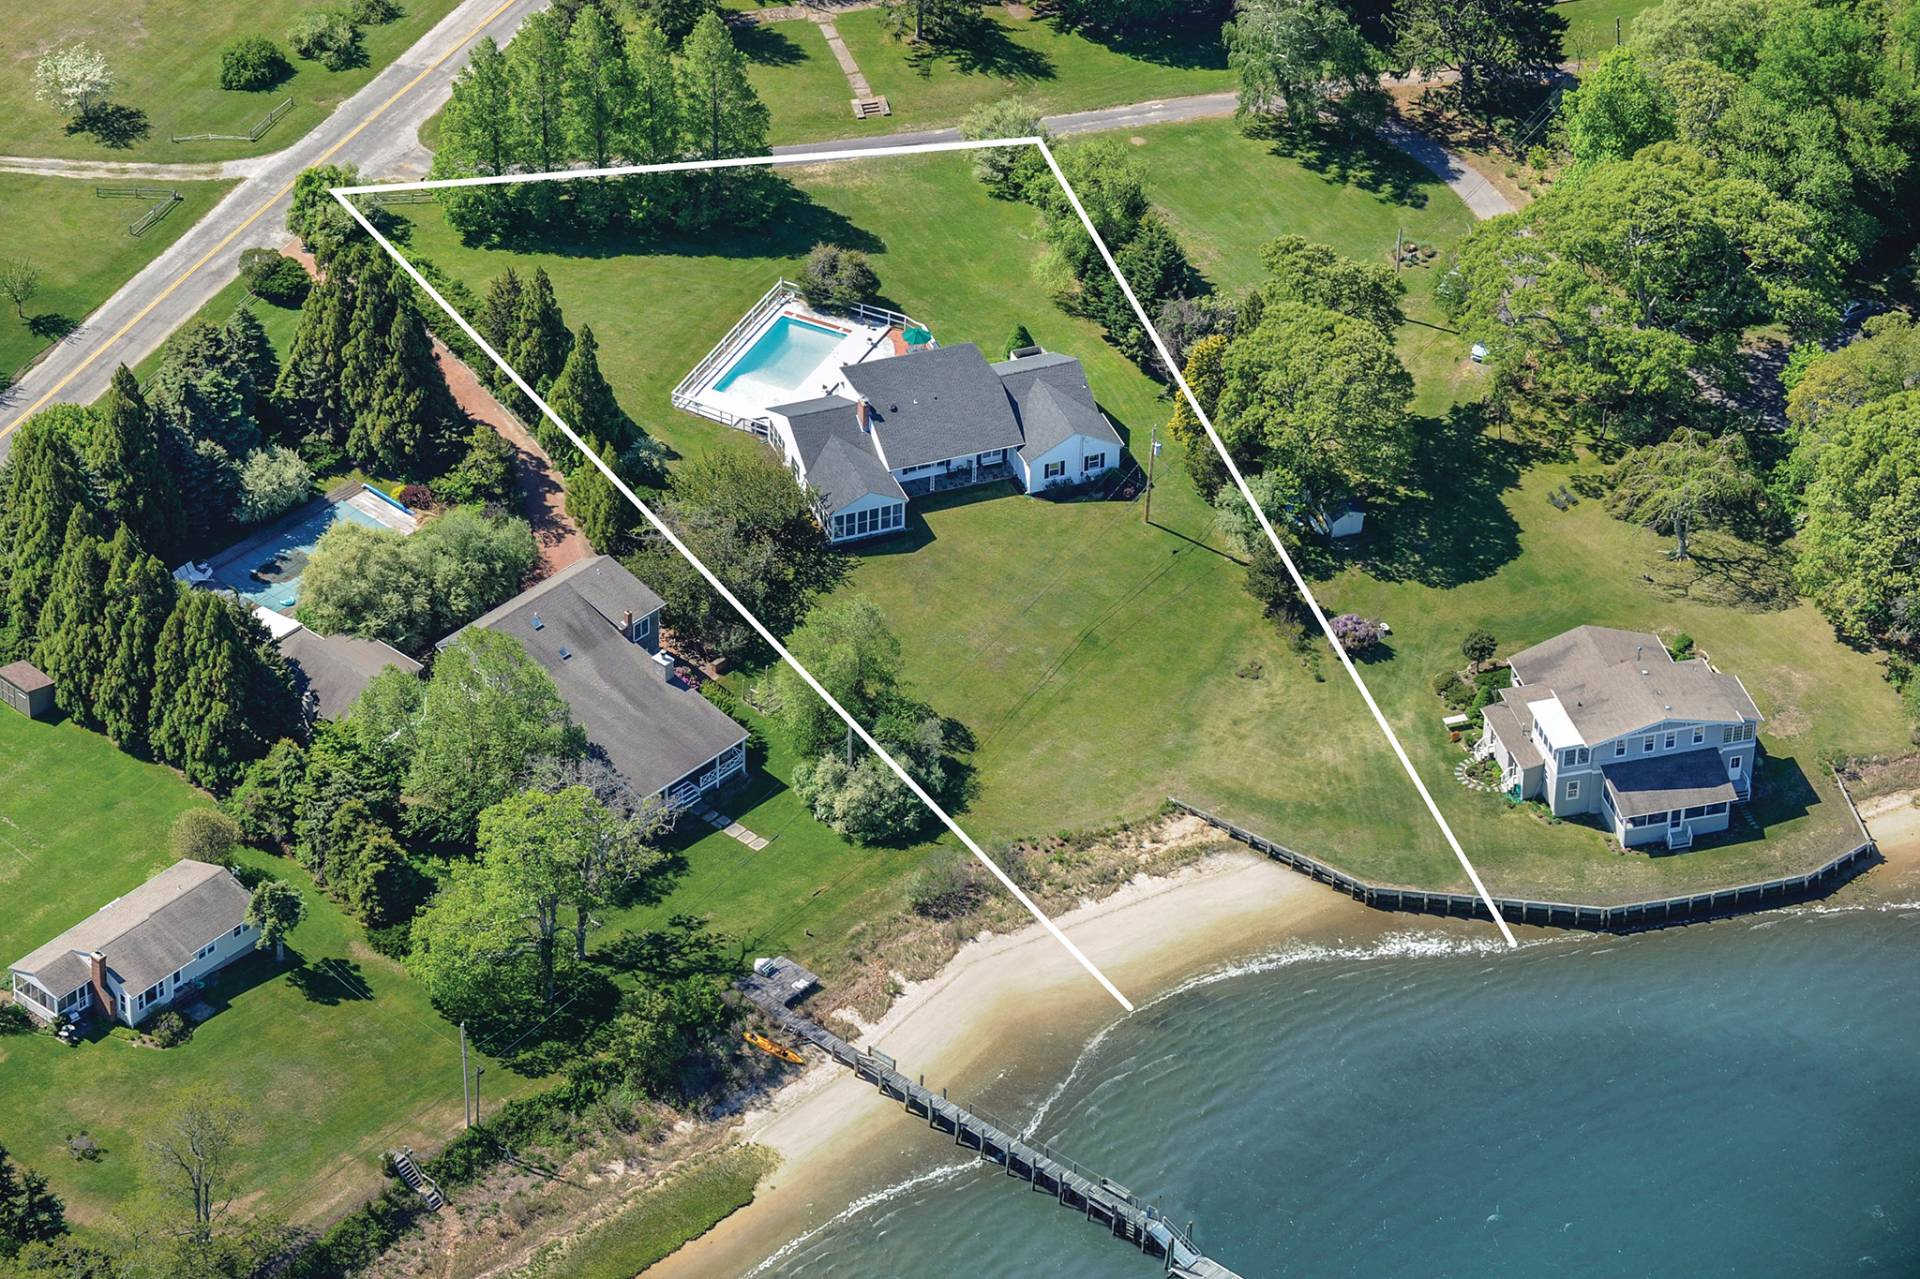 Single Family Home for Sale at Bay Front With Pool In Estate Section Shelter Island 16 Westmoreland Drive, Shelter Island, New York